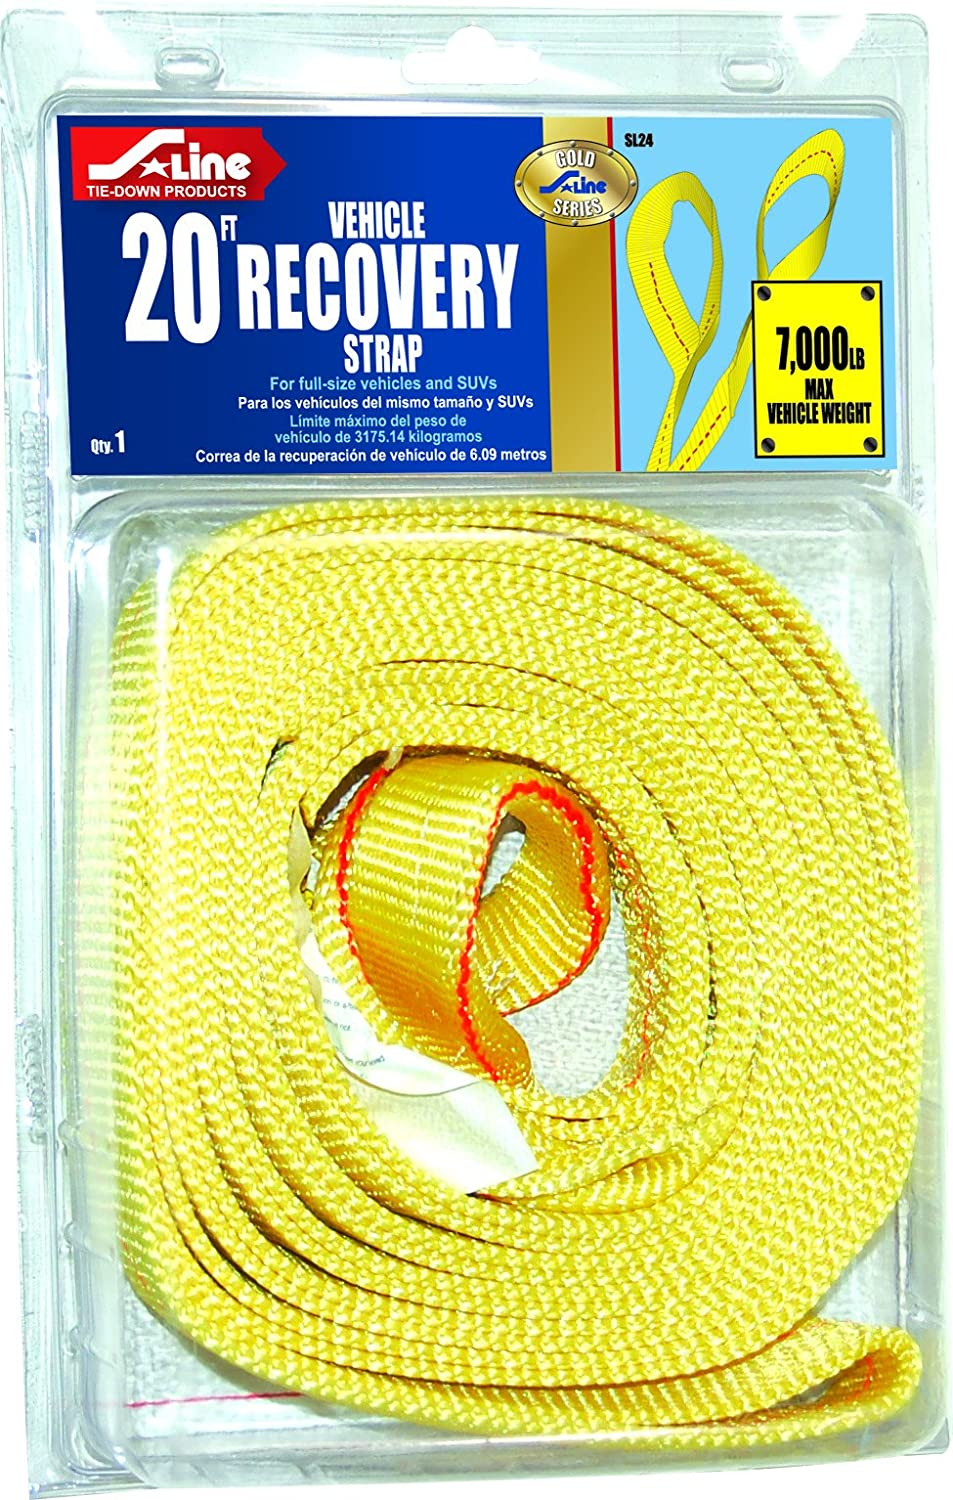 S-Line SL24 Recovery High quality Strap with Twisted 20-Feet Max 85% OFF by 2-Inch Loops